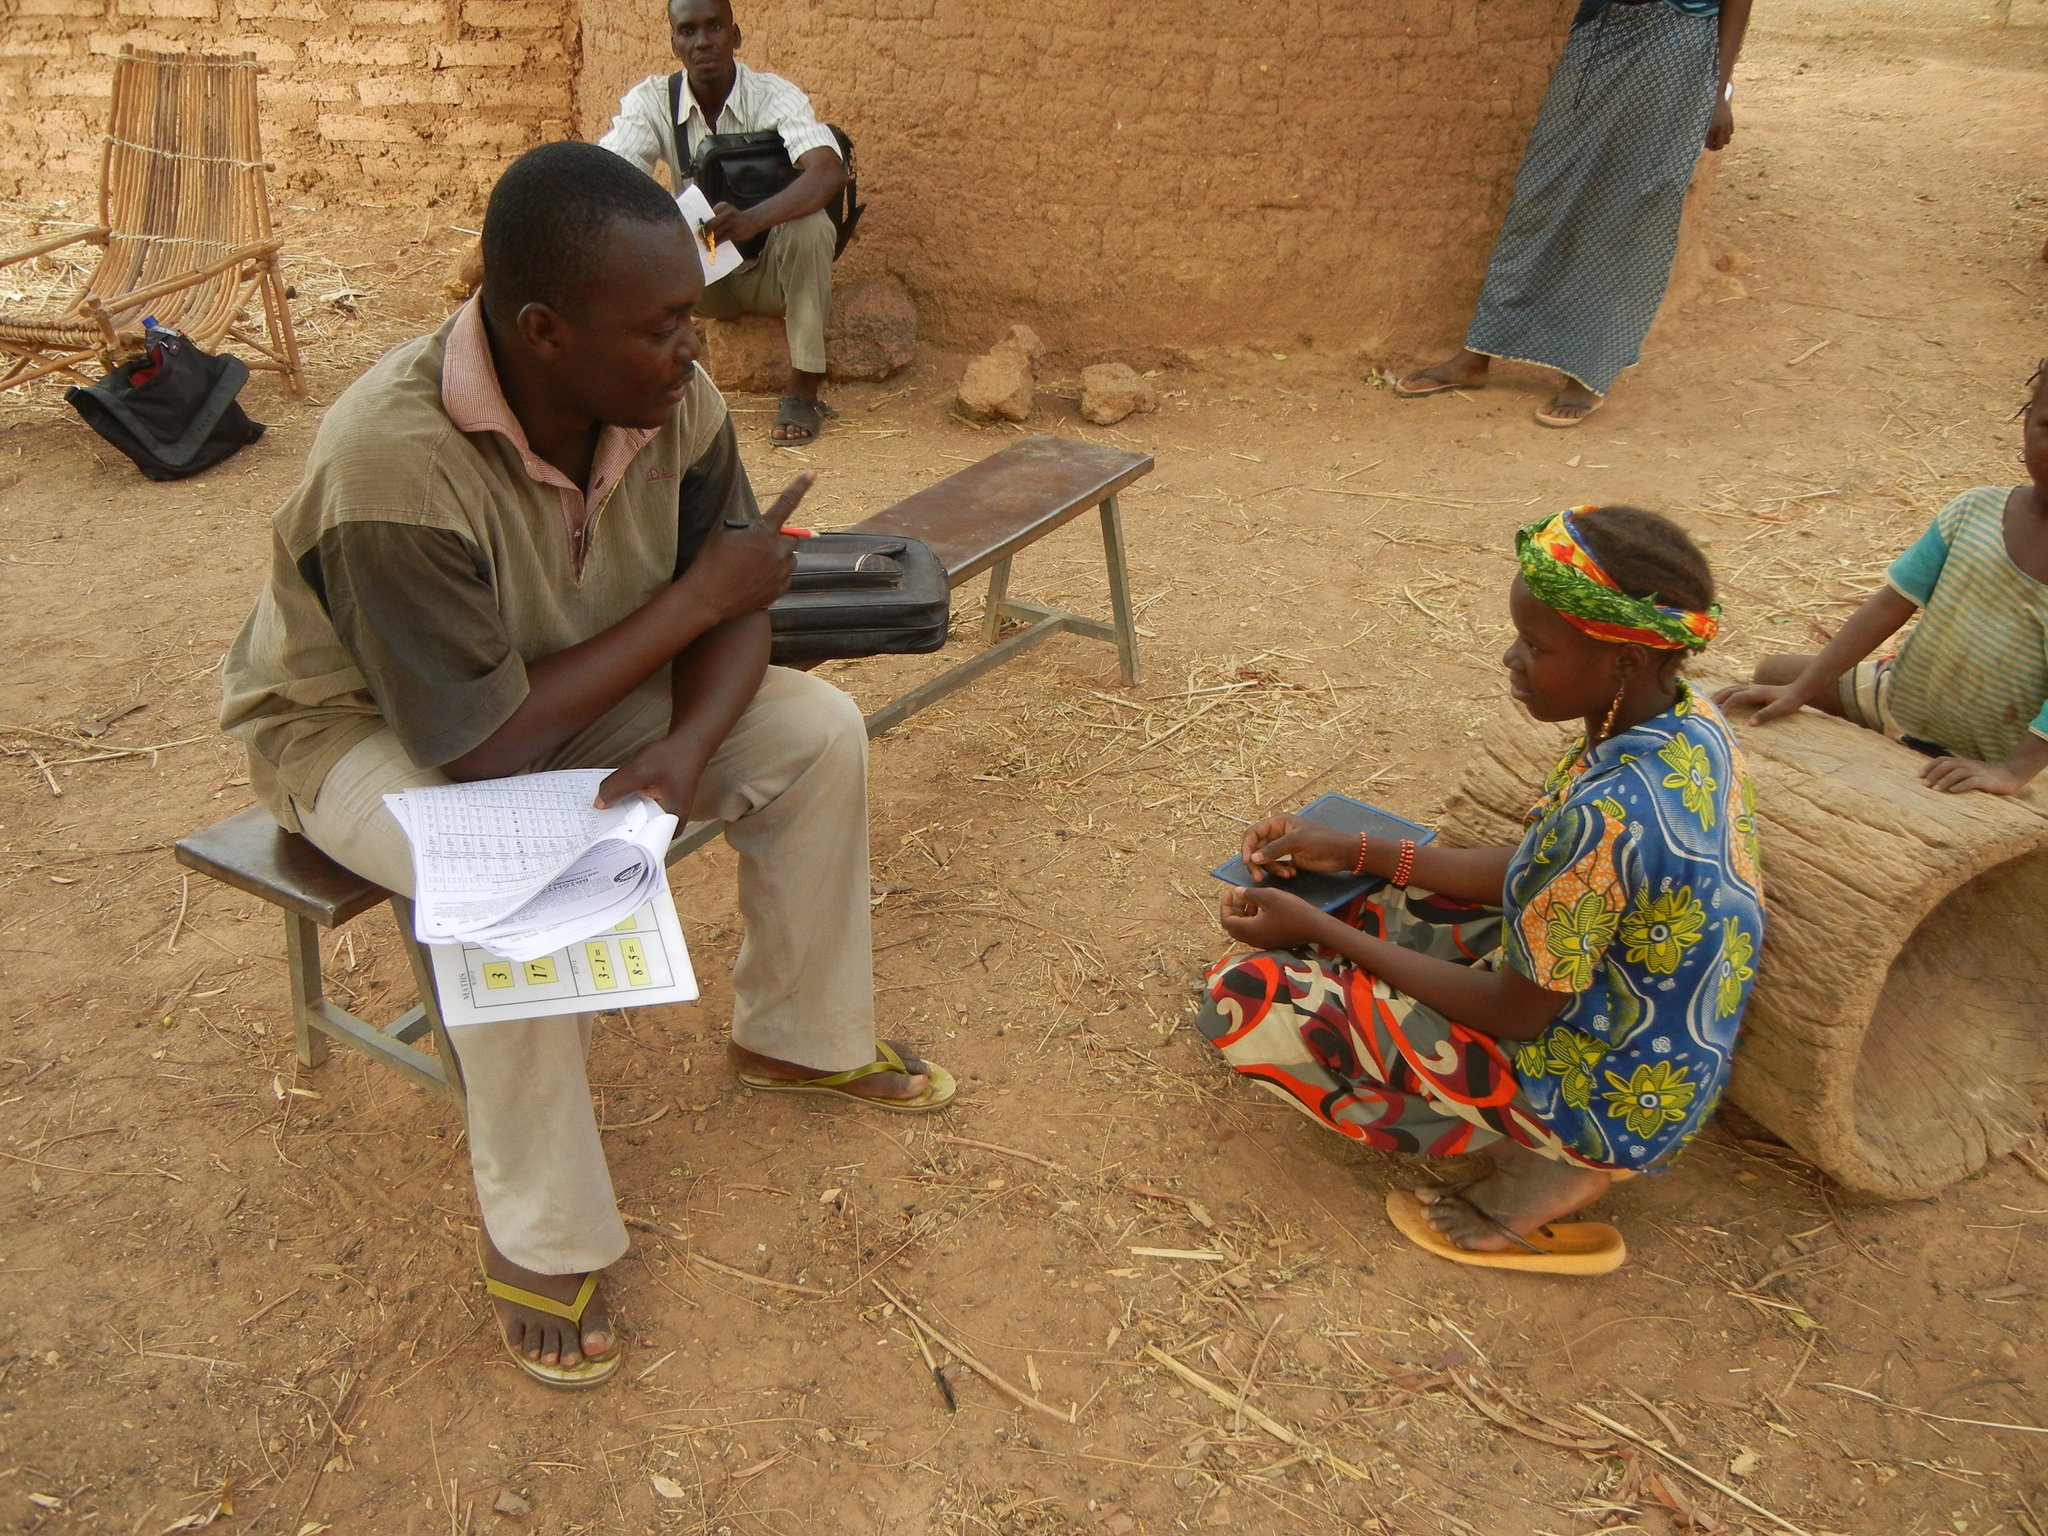 Girls education in Burkina Faso project shows how evidence led to scale up of an effective program. #All4Evidence    https://t.co/0q6sOkMN3r https://t.co/HMStim4bOC